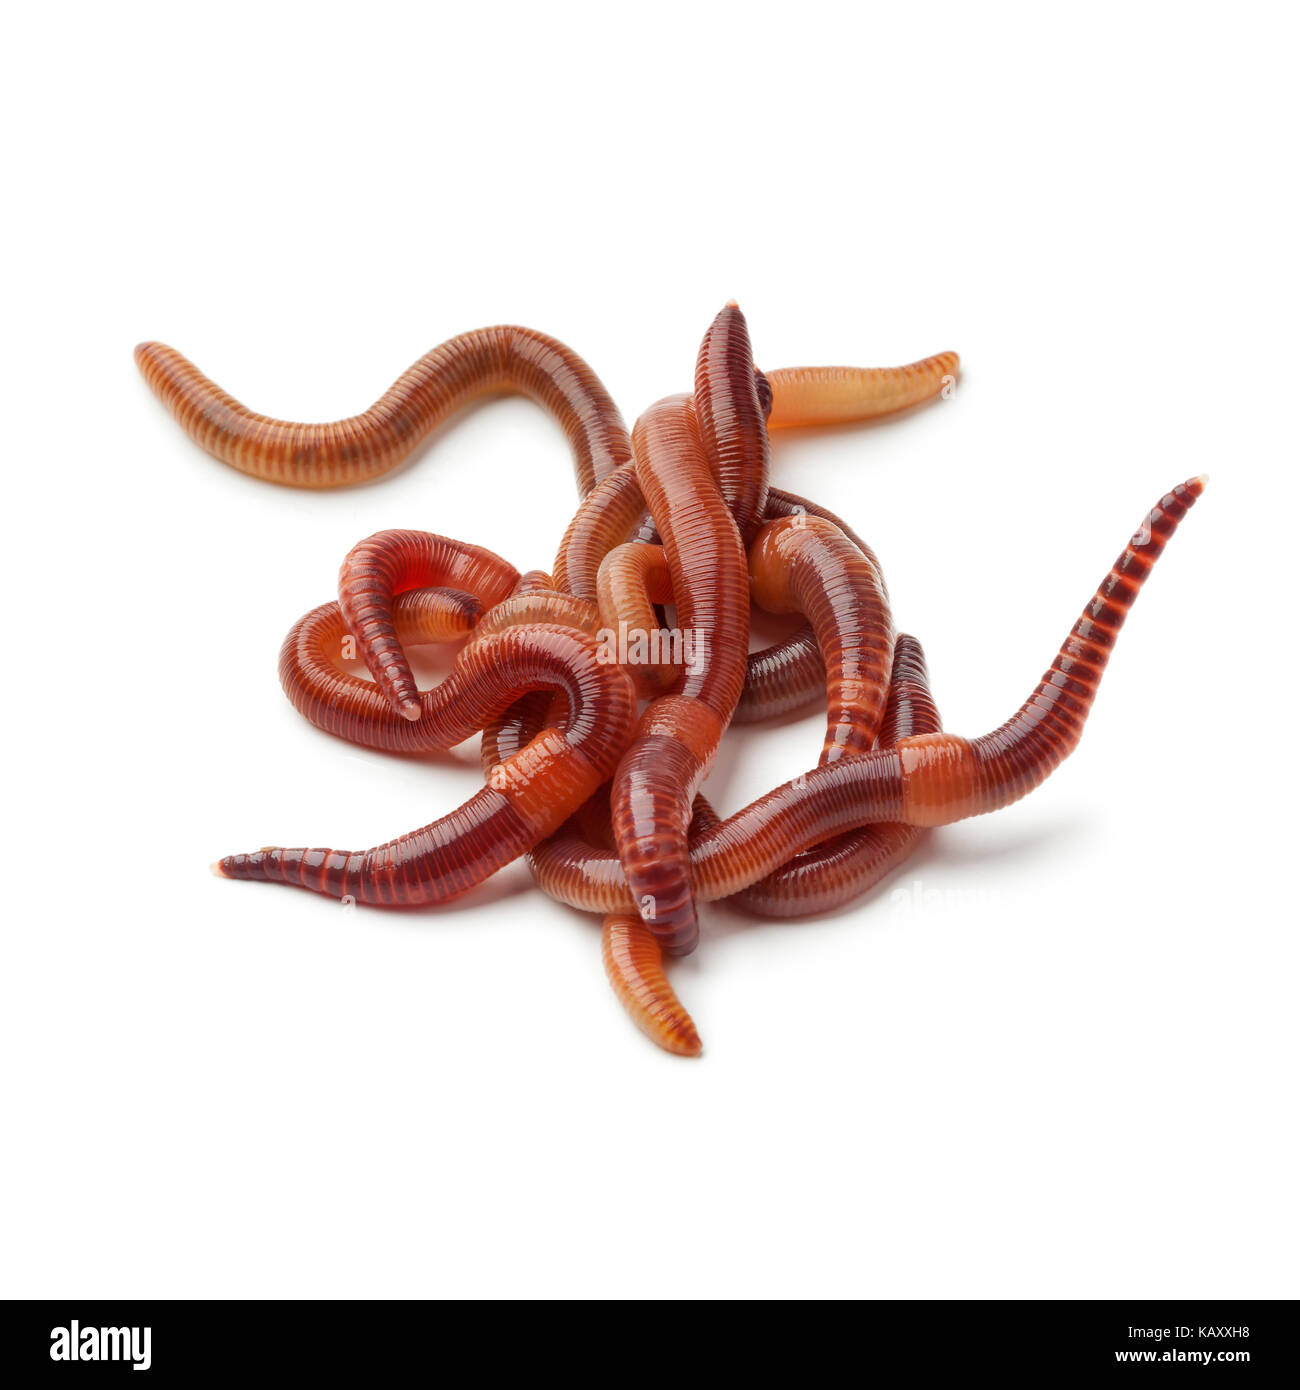 Heap of earthworms on white background - Stock Image